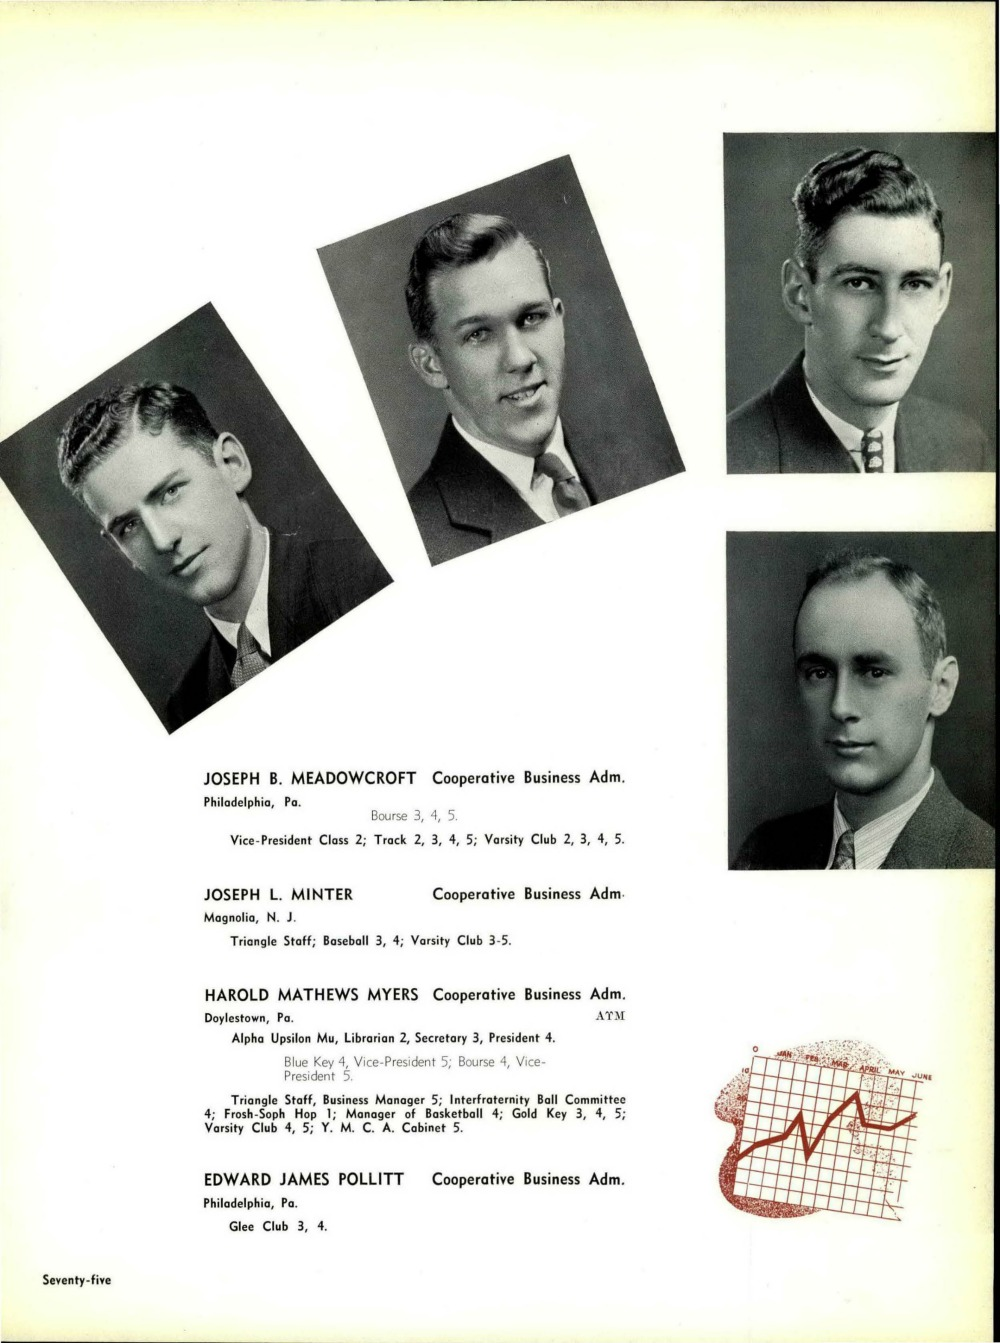 Harold Myers in the 1938 Lexerd yearbook. Photo courtesy University Archives.